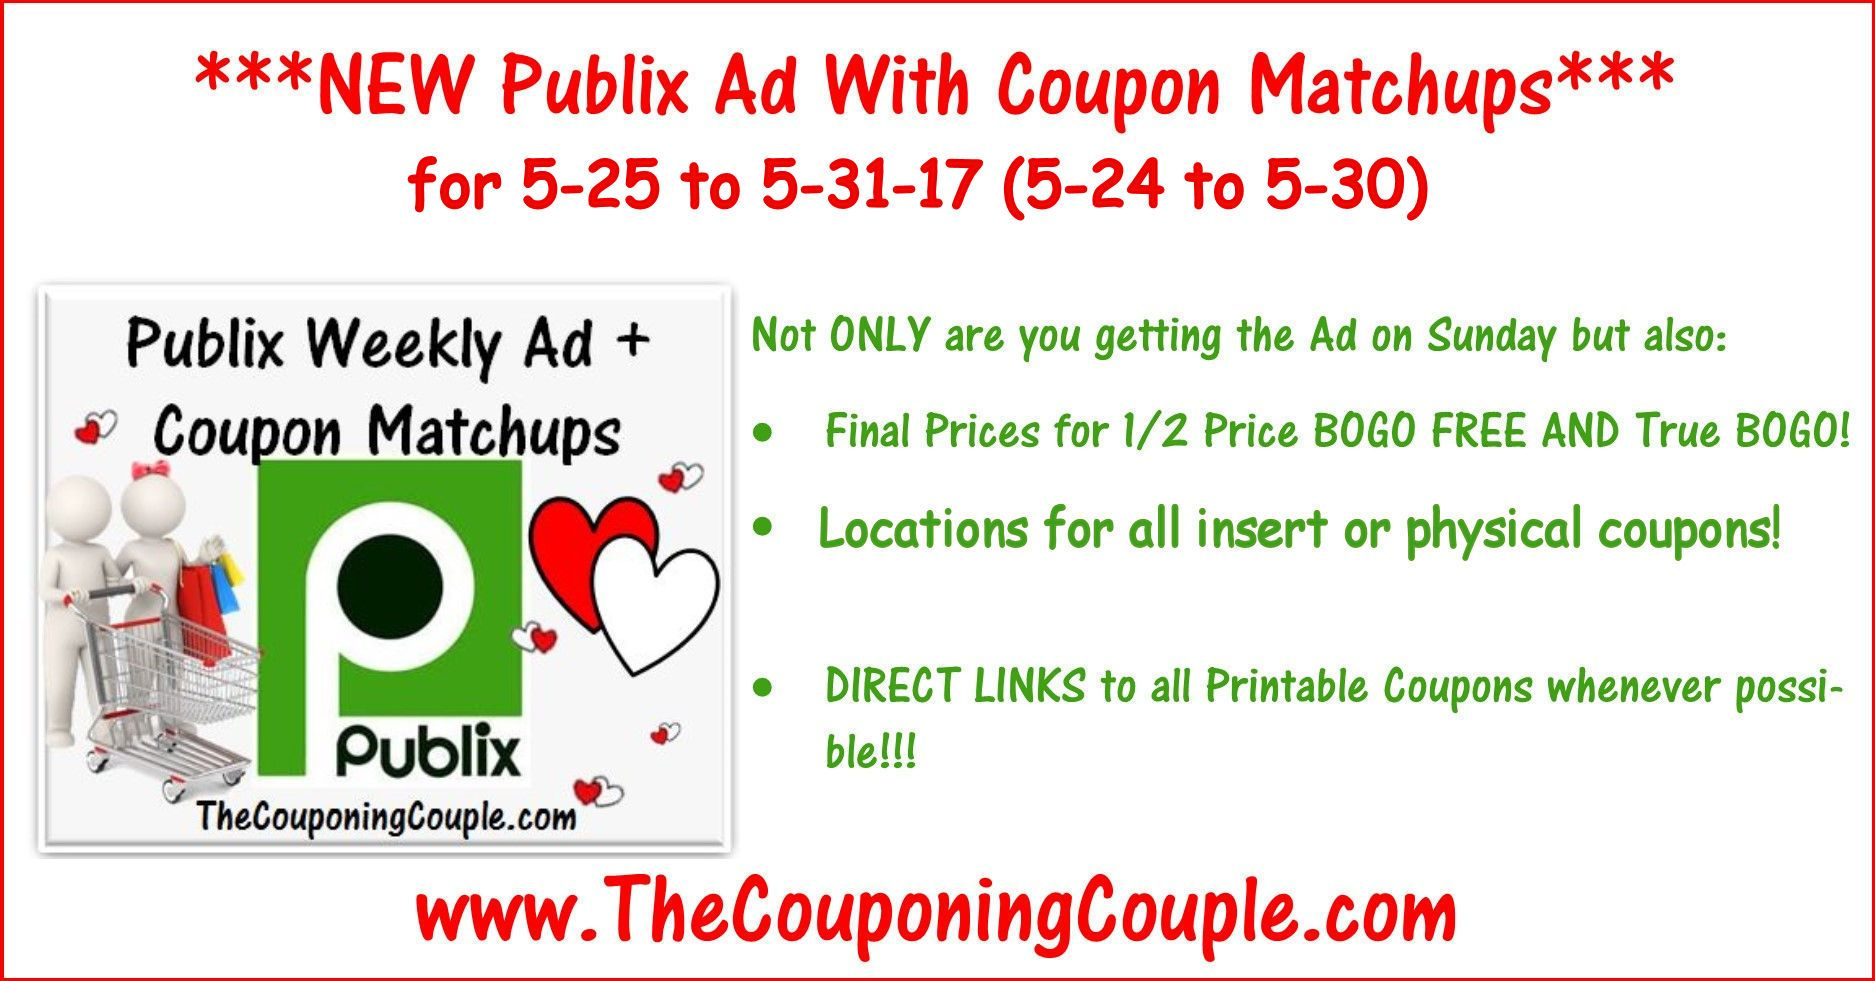 Publix Ad With Coupon Matchups For 5 25 To 5 31 17 5 24 To 5 30 Coupon Matchups Publix Coupons Coupons